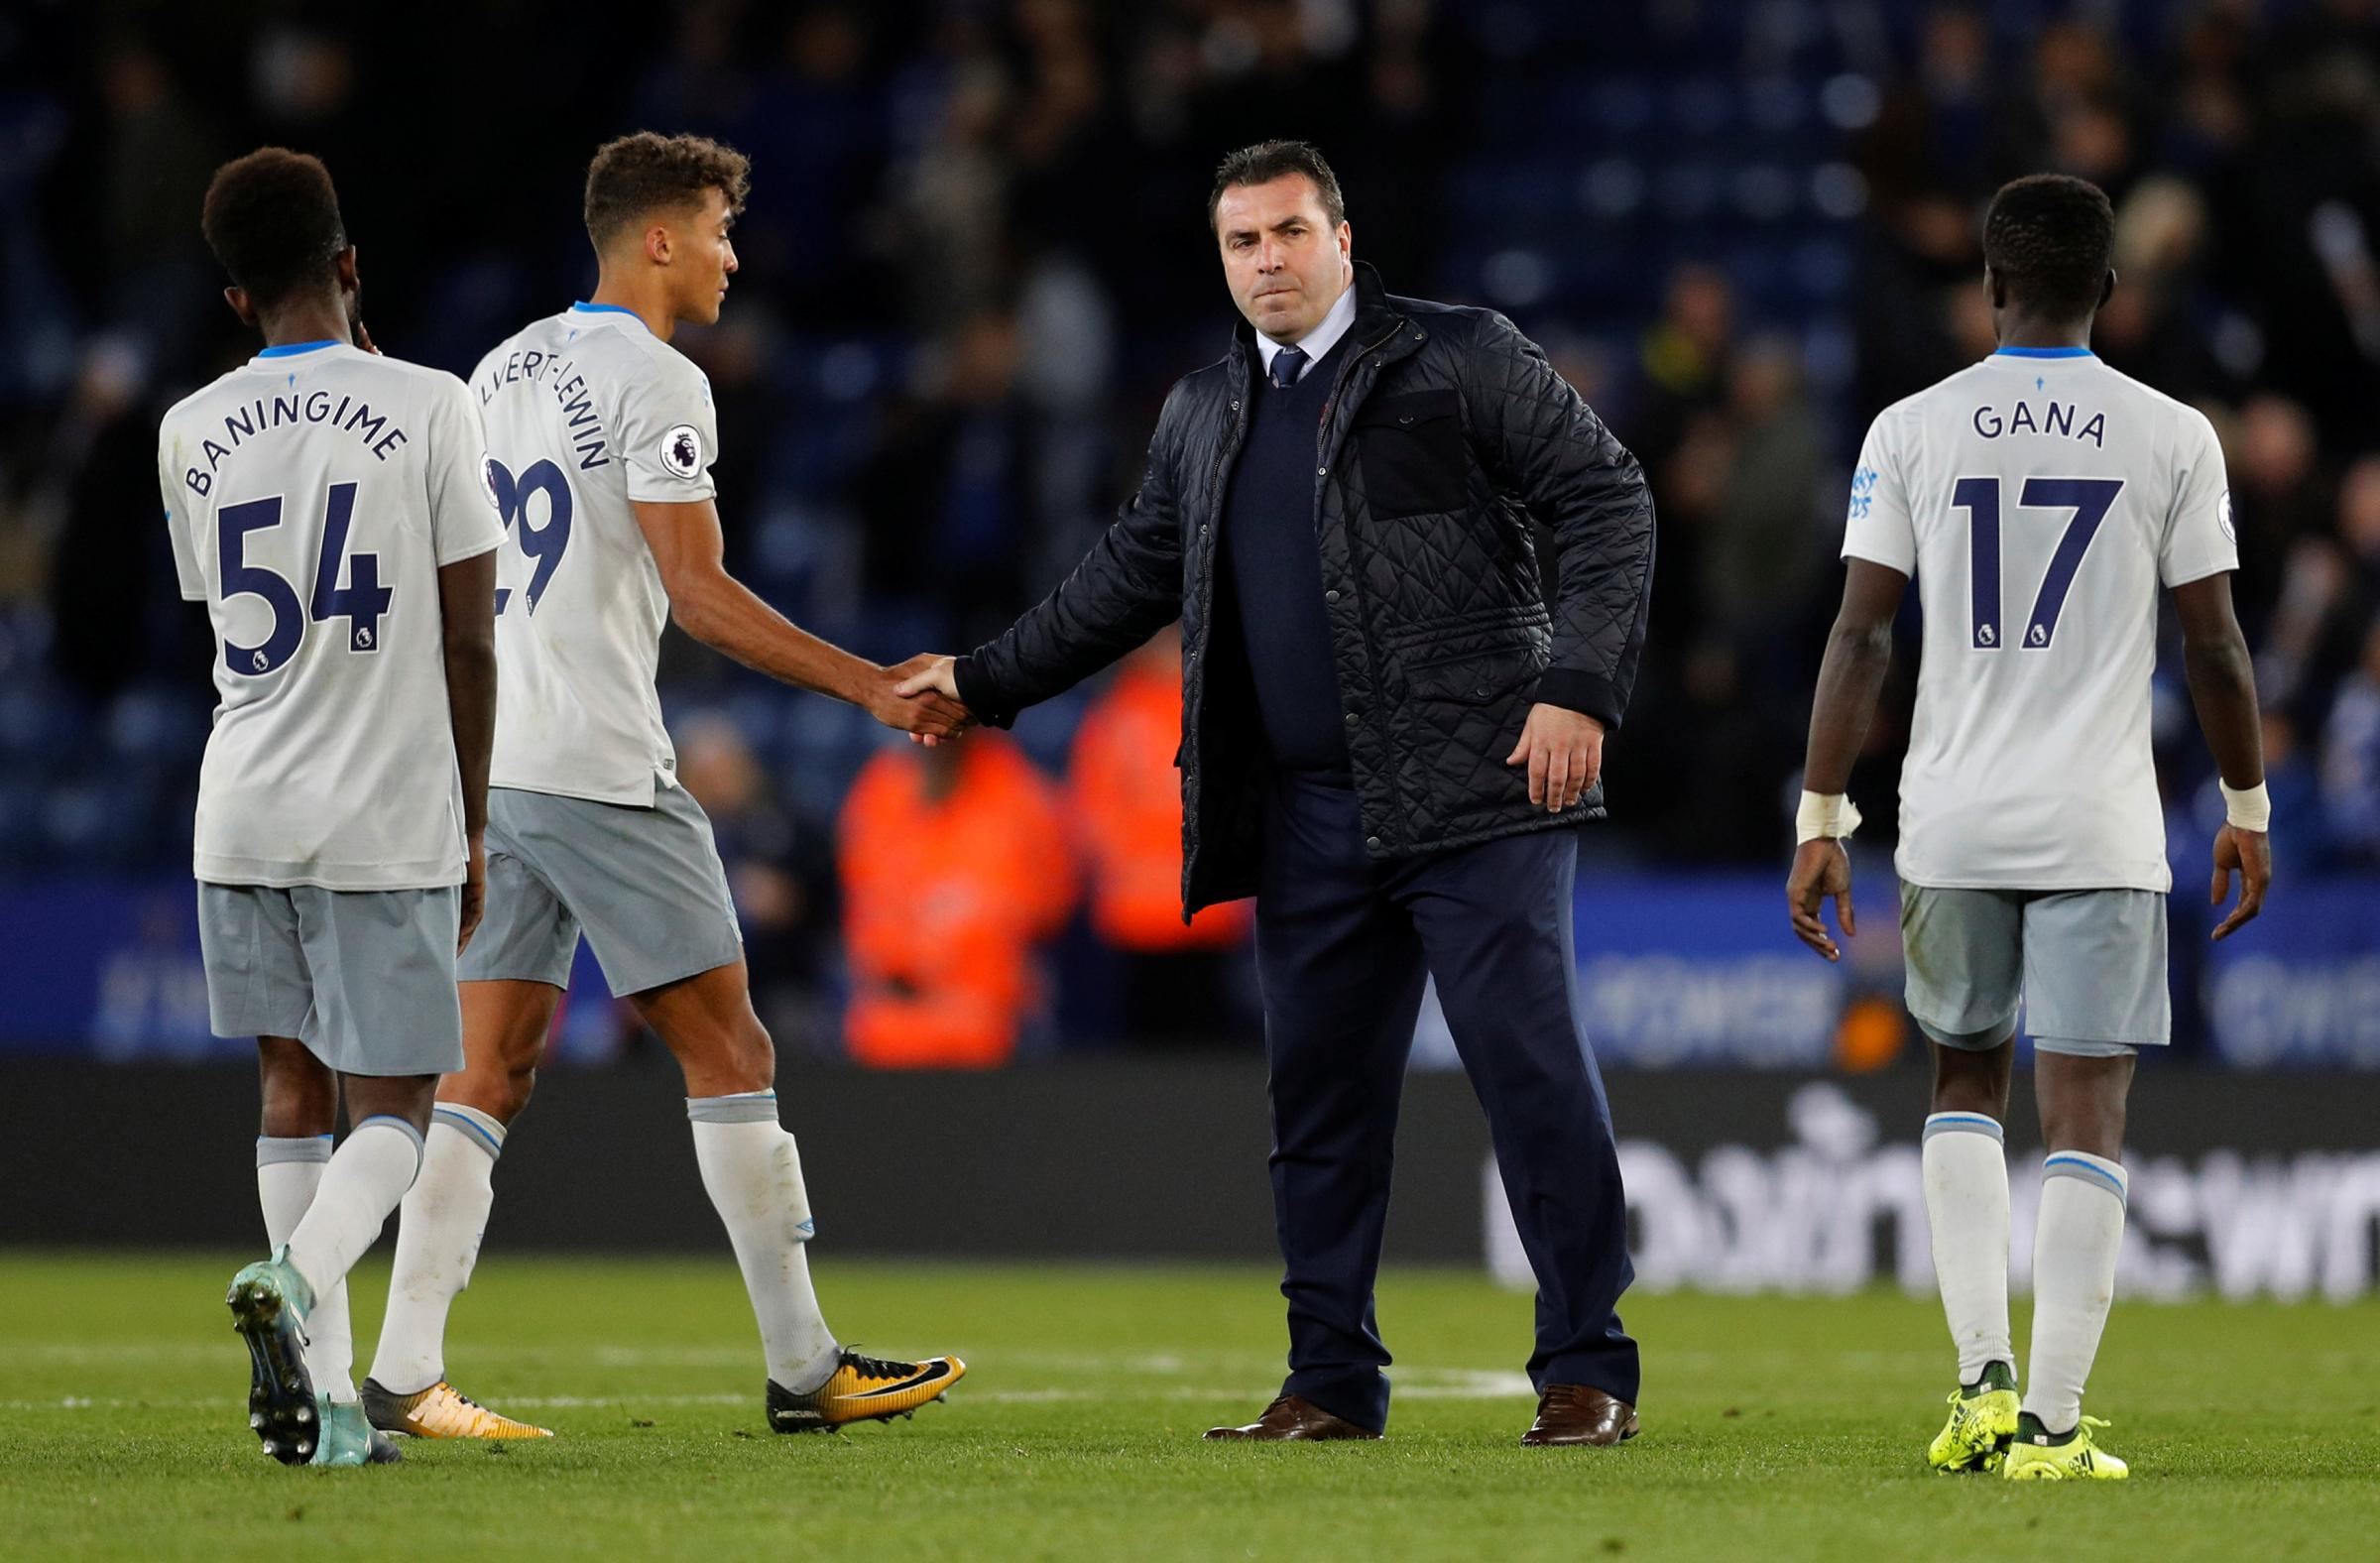 Unsworth's personal reasons behind labelling Watford game 'cup final'